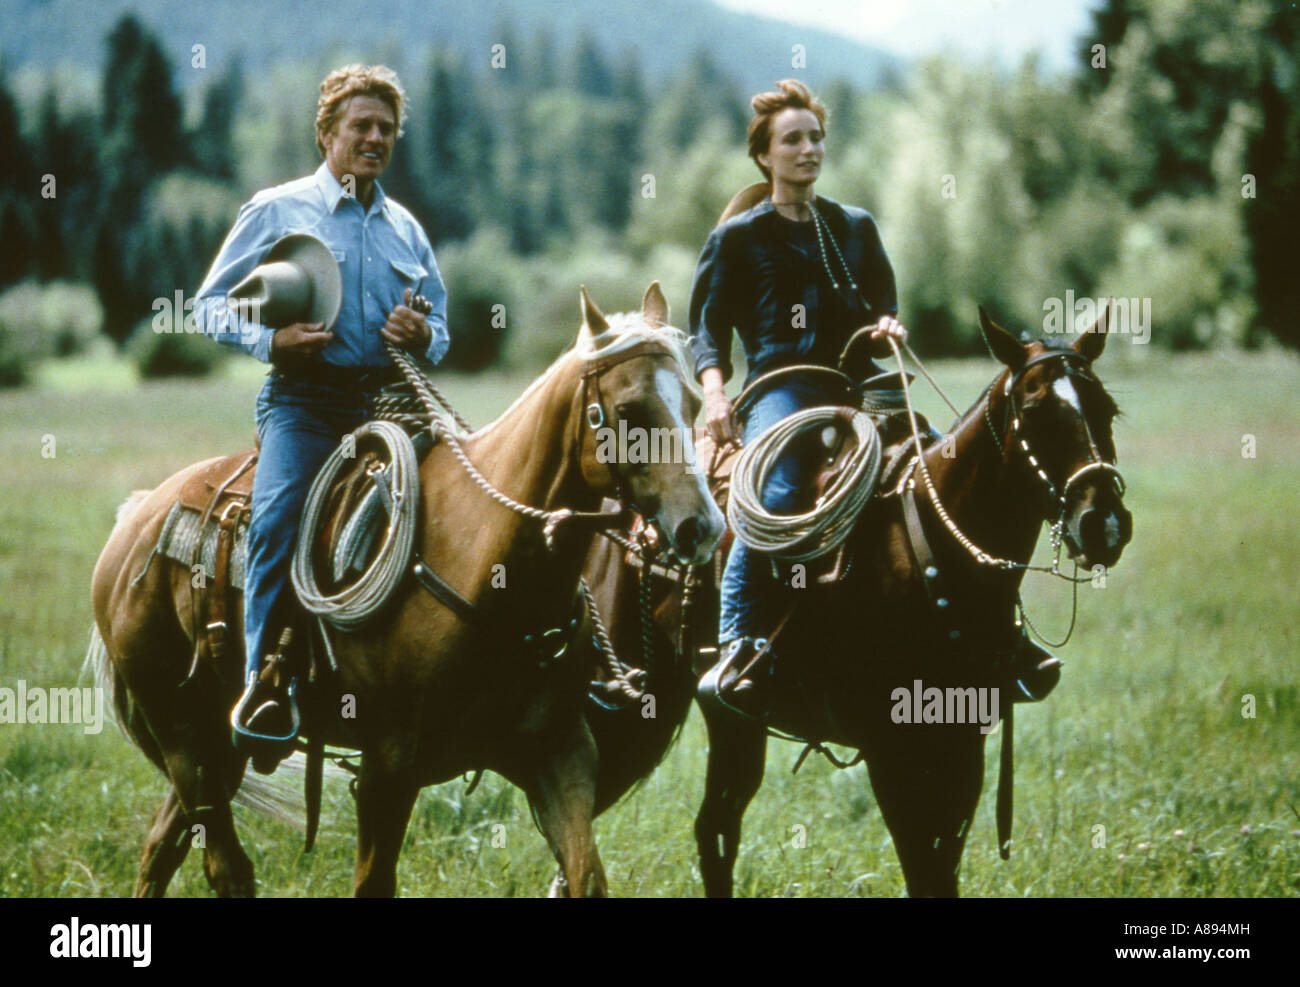 The Horse Whisperer 1998 Buena Vista Film With Robert Redford And Stock Photo Alamy